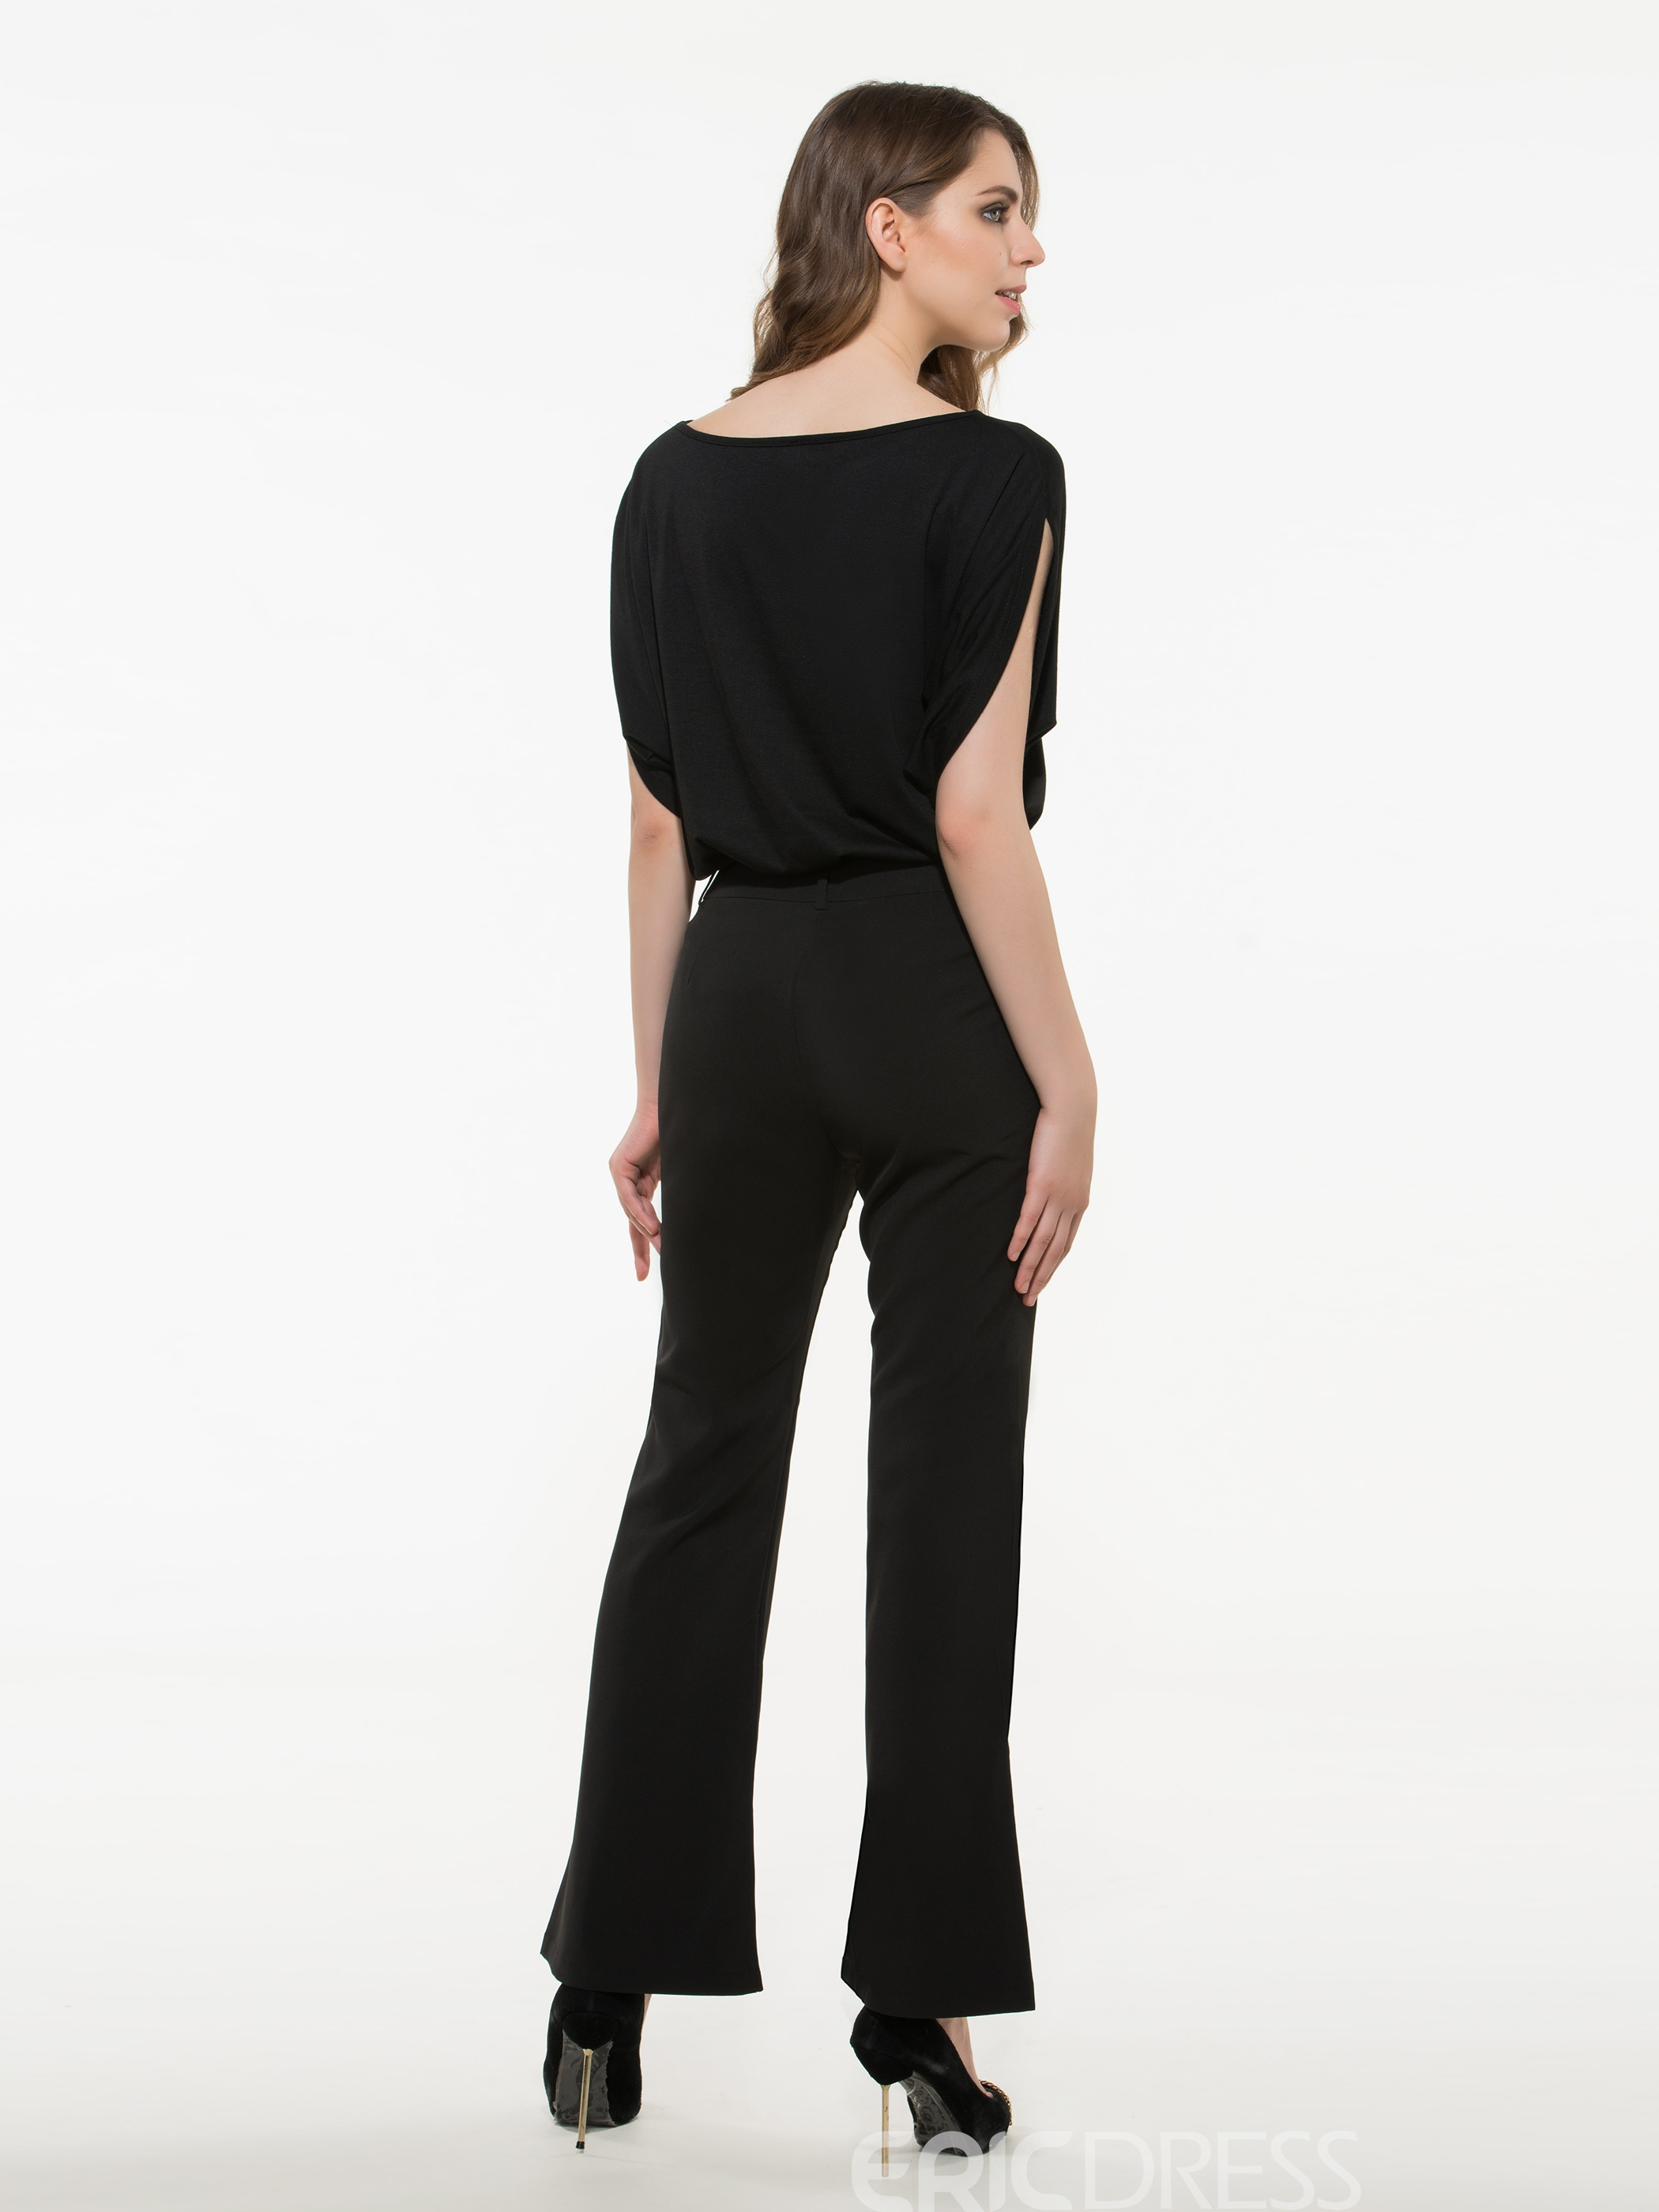 Ericdress Fashion Elegant Jumpsuits Pants